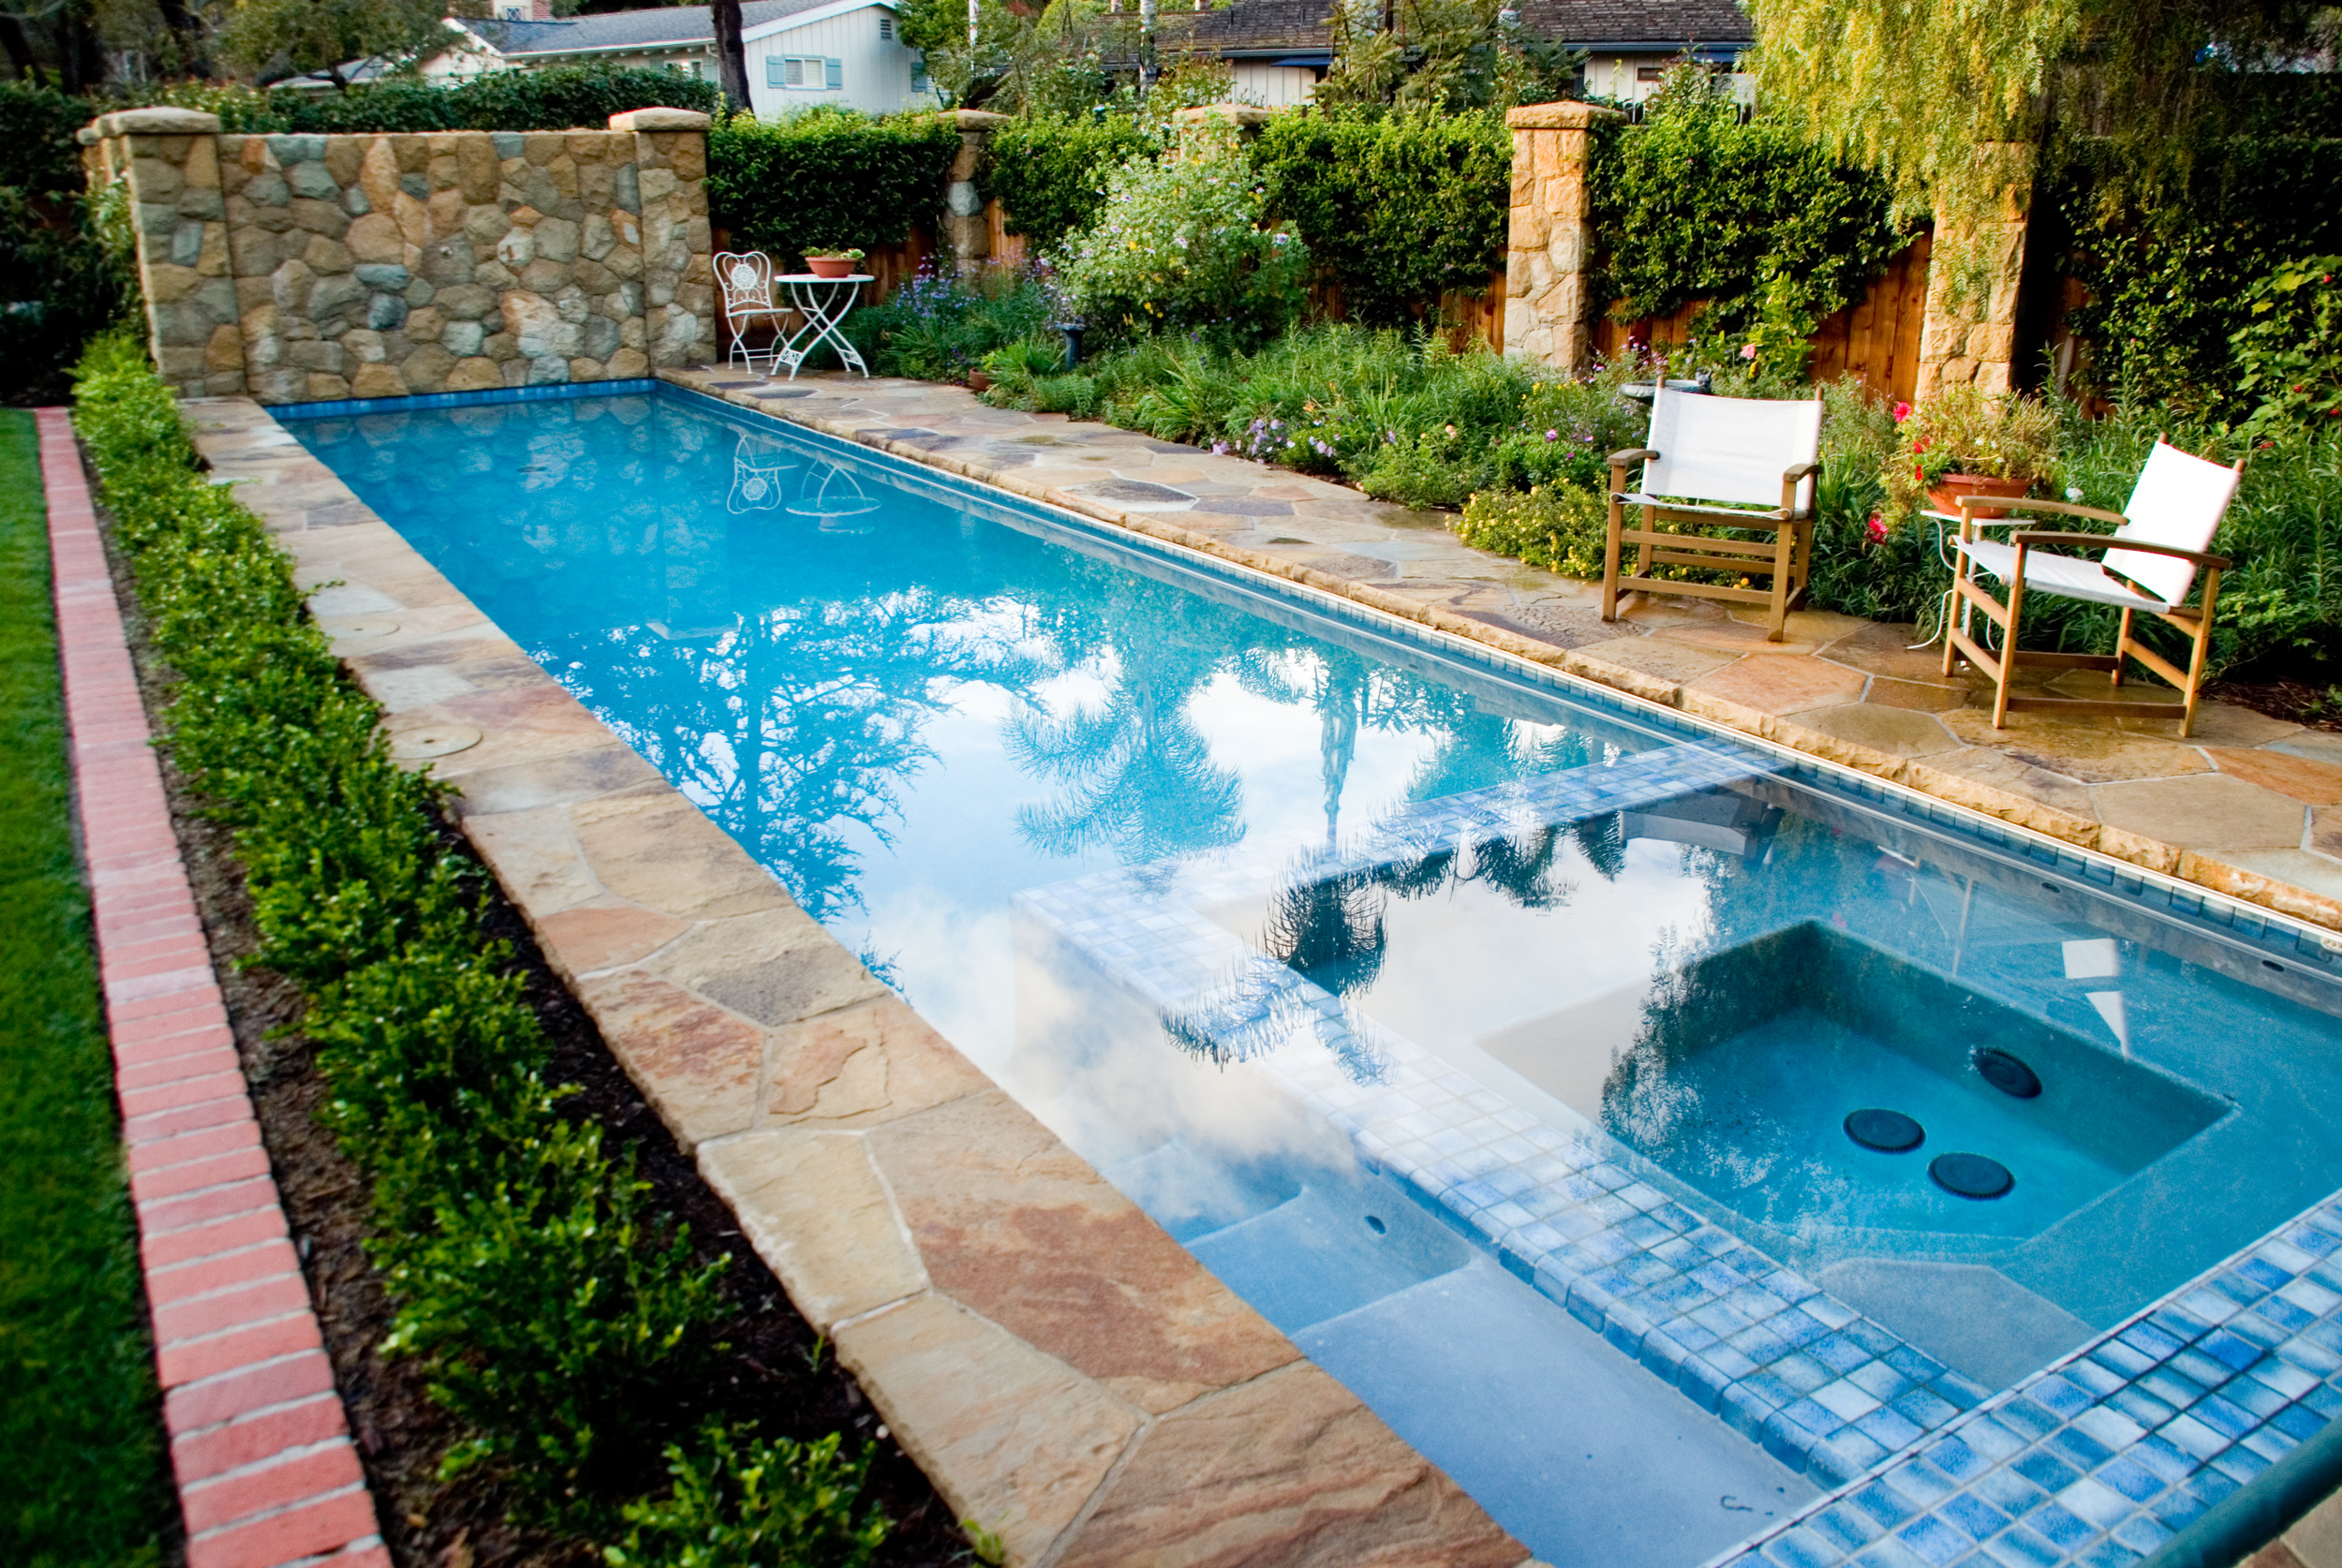 Long swimming pool with inset spa, long gradual steps lead into pool snugly fit between spa and pool side. Decorative variegated blue tile surround spa, blending into the shimmering pool waters.